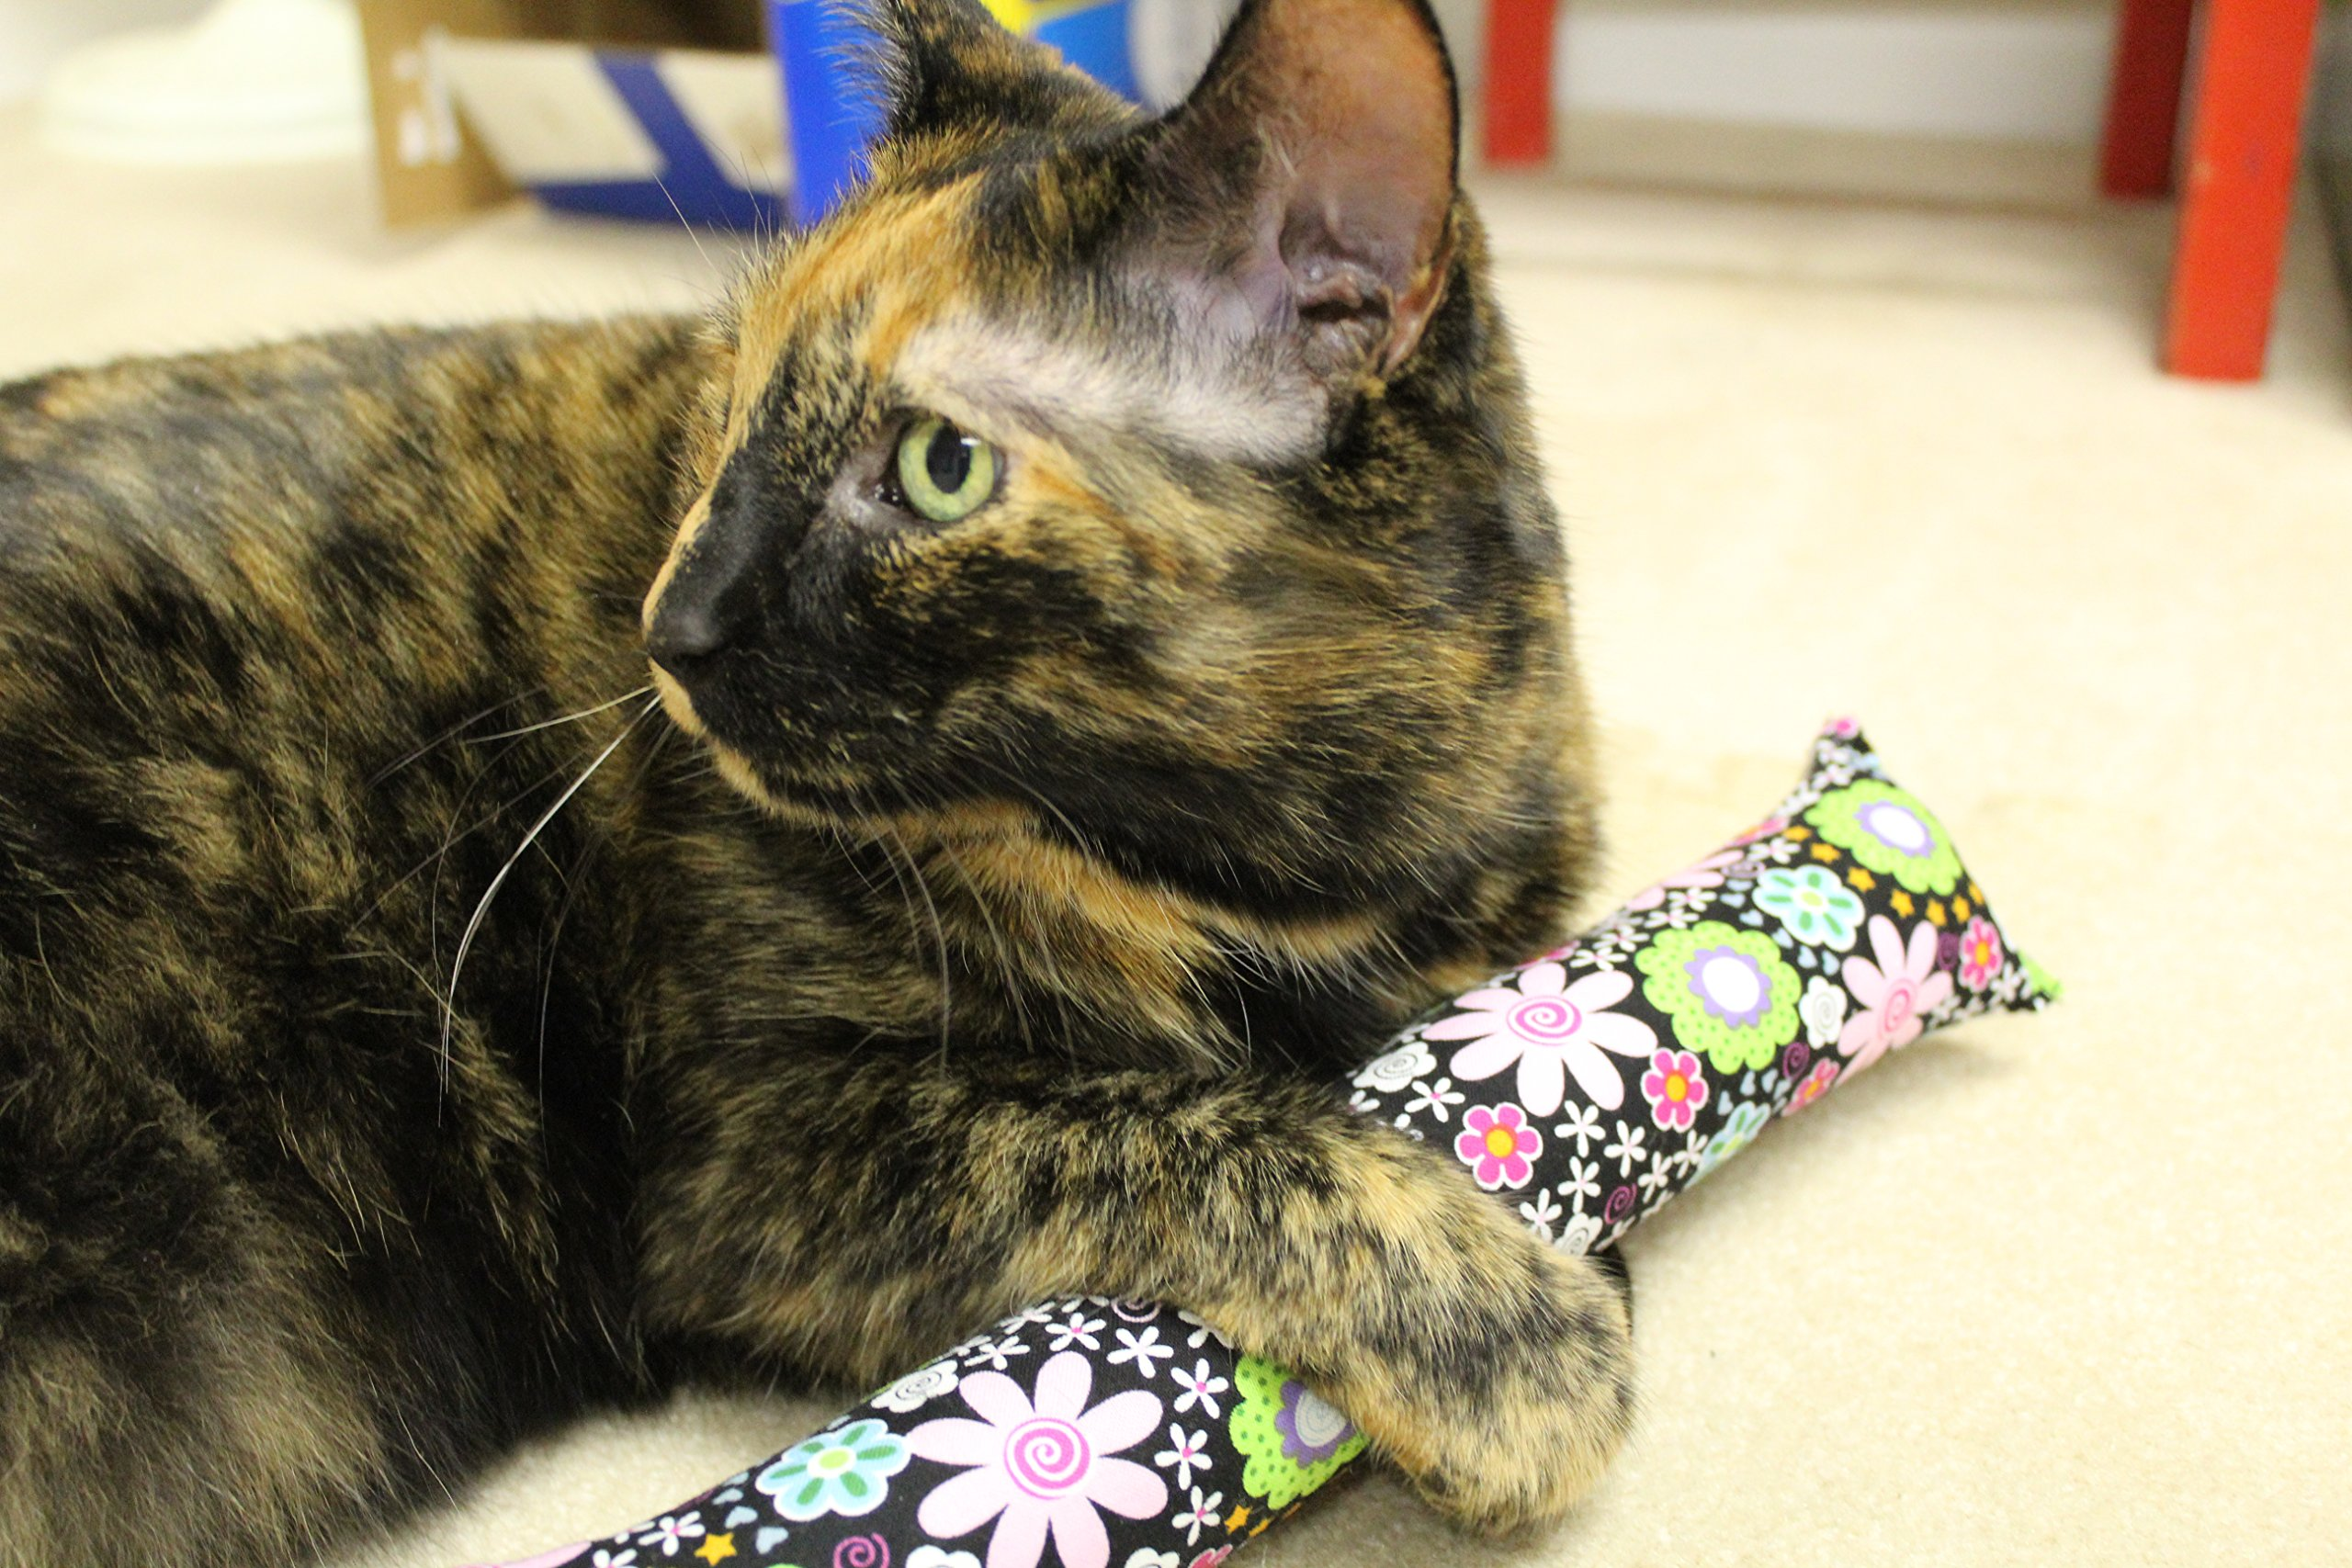 11'' Kitty Stick Catnip Cat Toy (Pack of 4), Assorted Colors & Patterns by Kitty Kandy (Image #3)